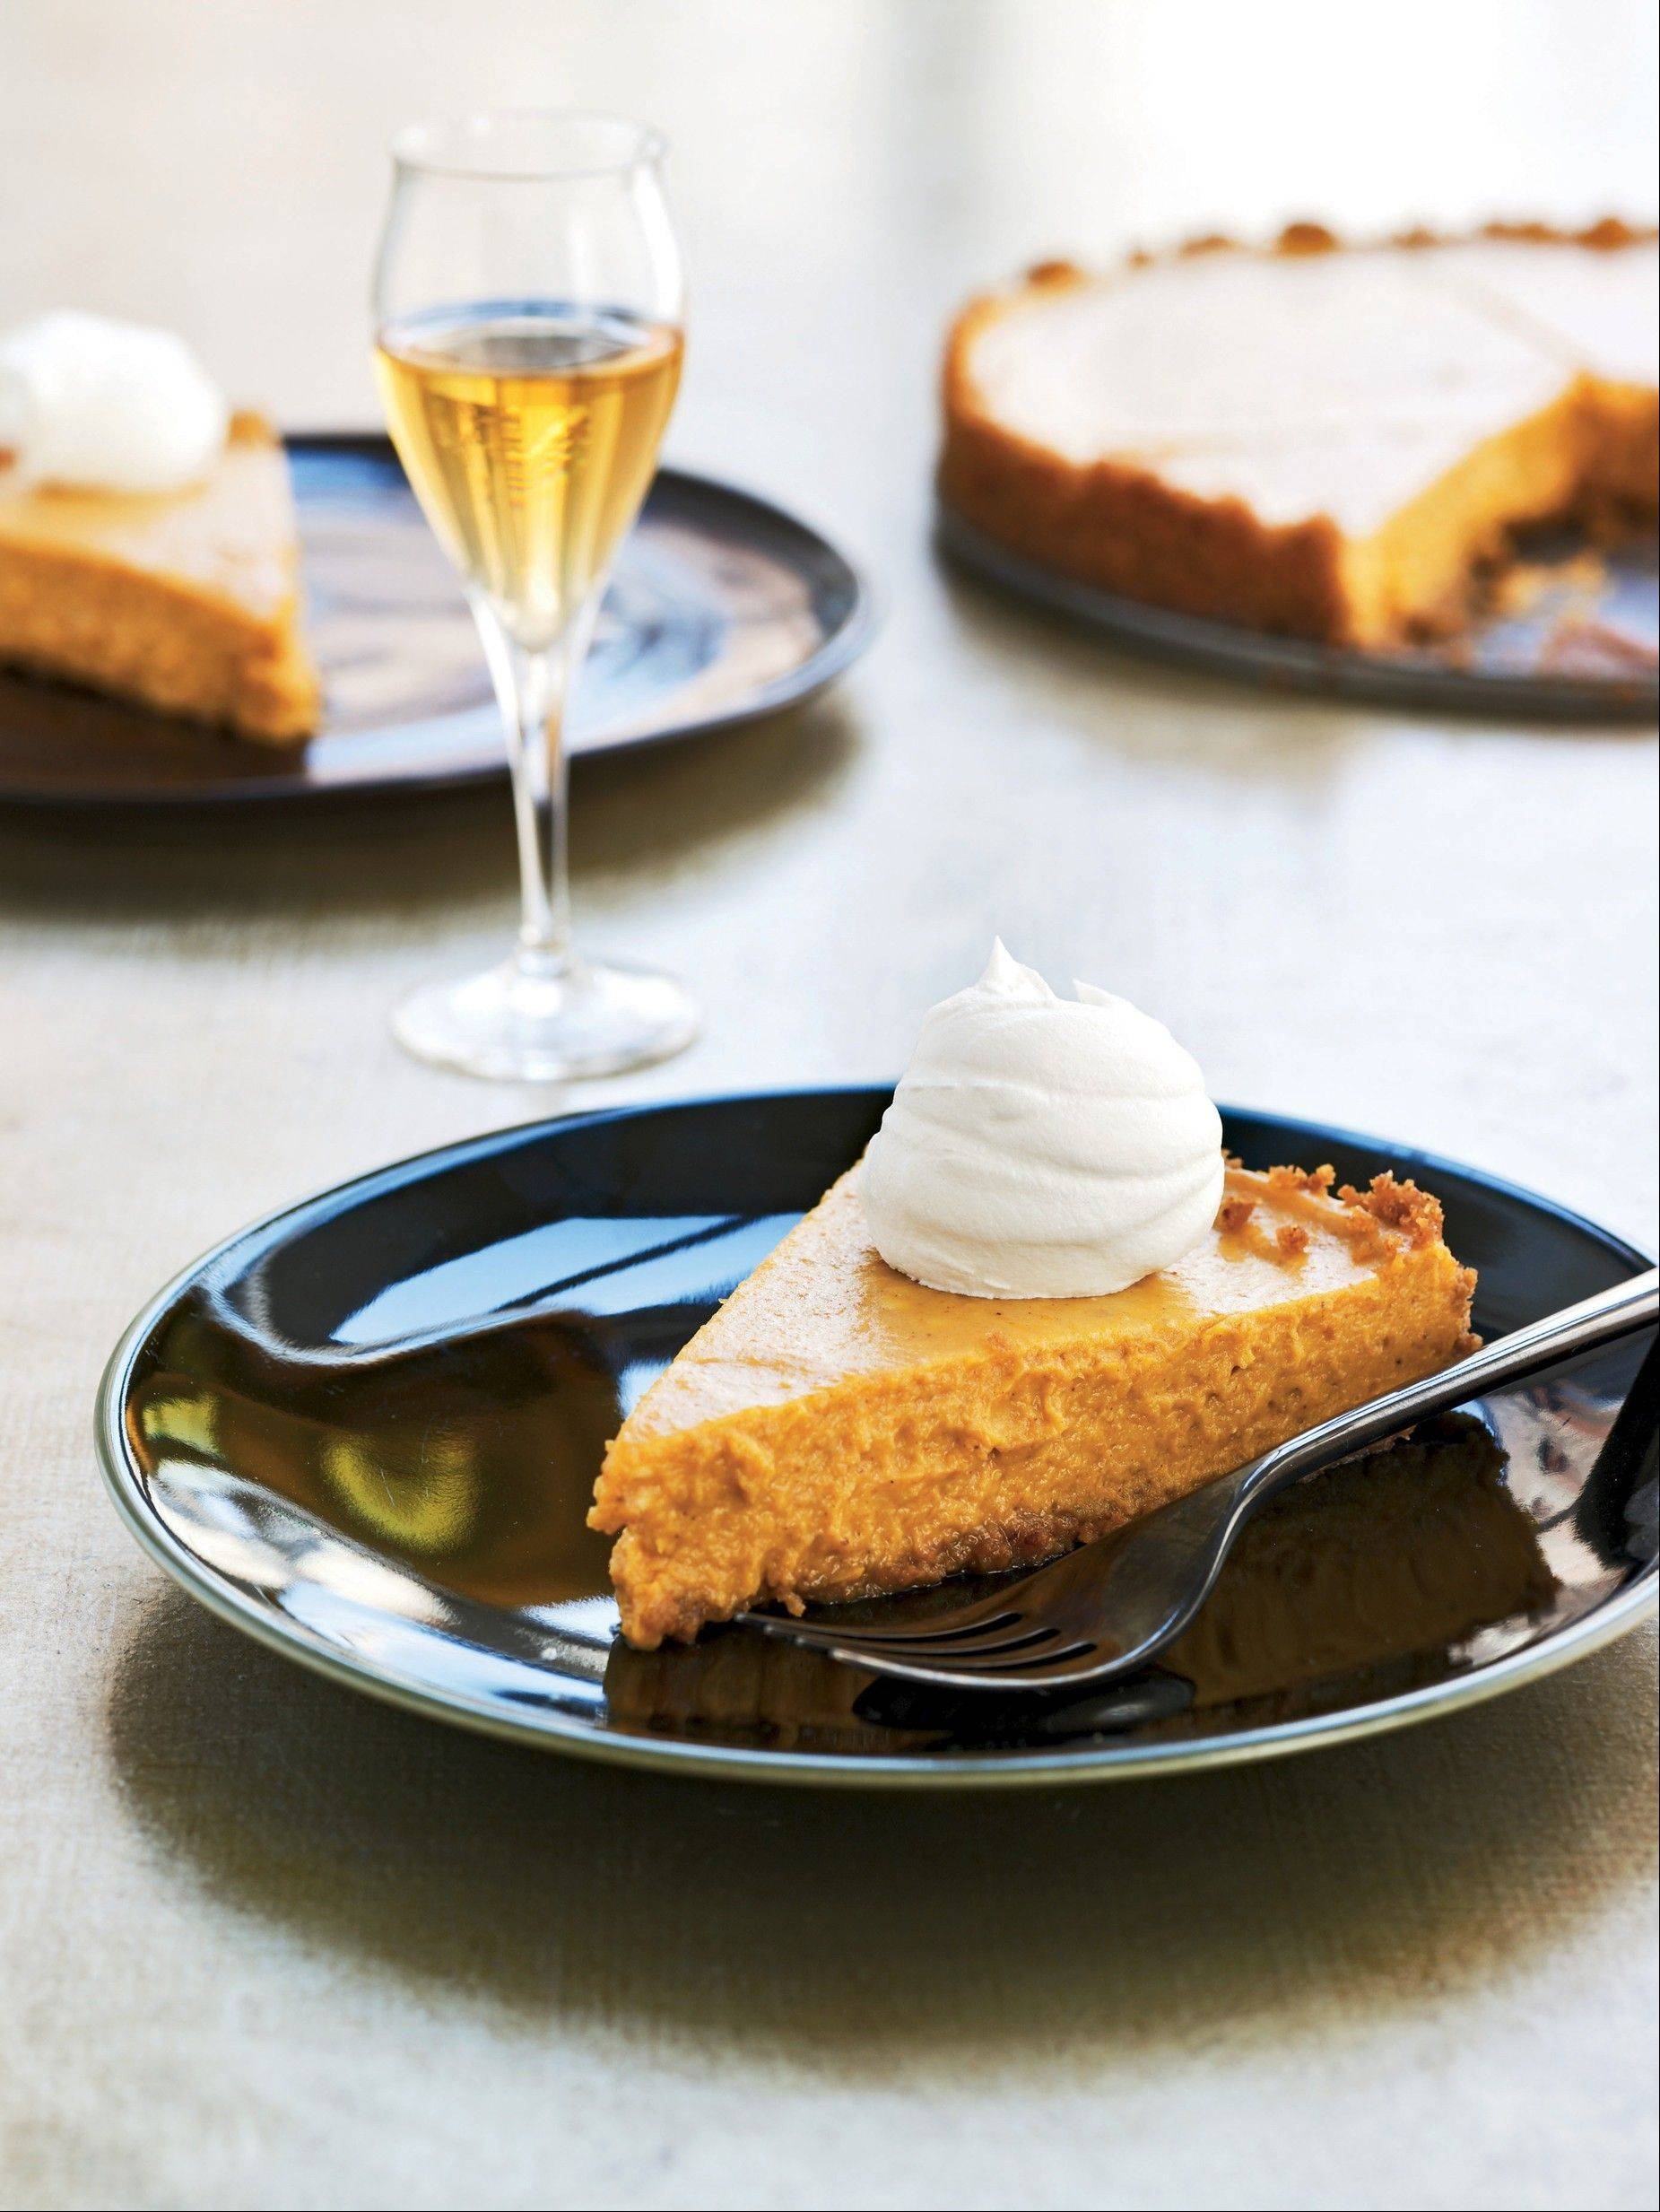 This autumnal Vanilla-Bourbon Pumpkin Tart is one of the many too-good-to-be-true recipes in �The New Way to Cook Light� by the editors at Cooking Light magazine.